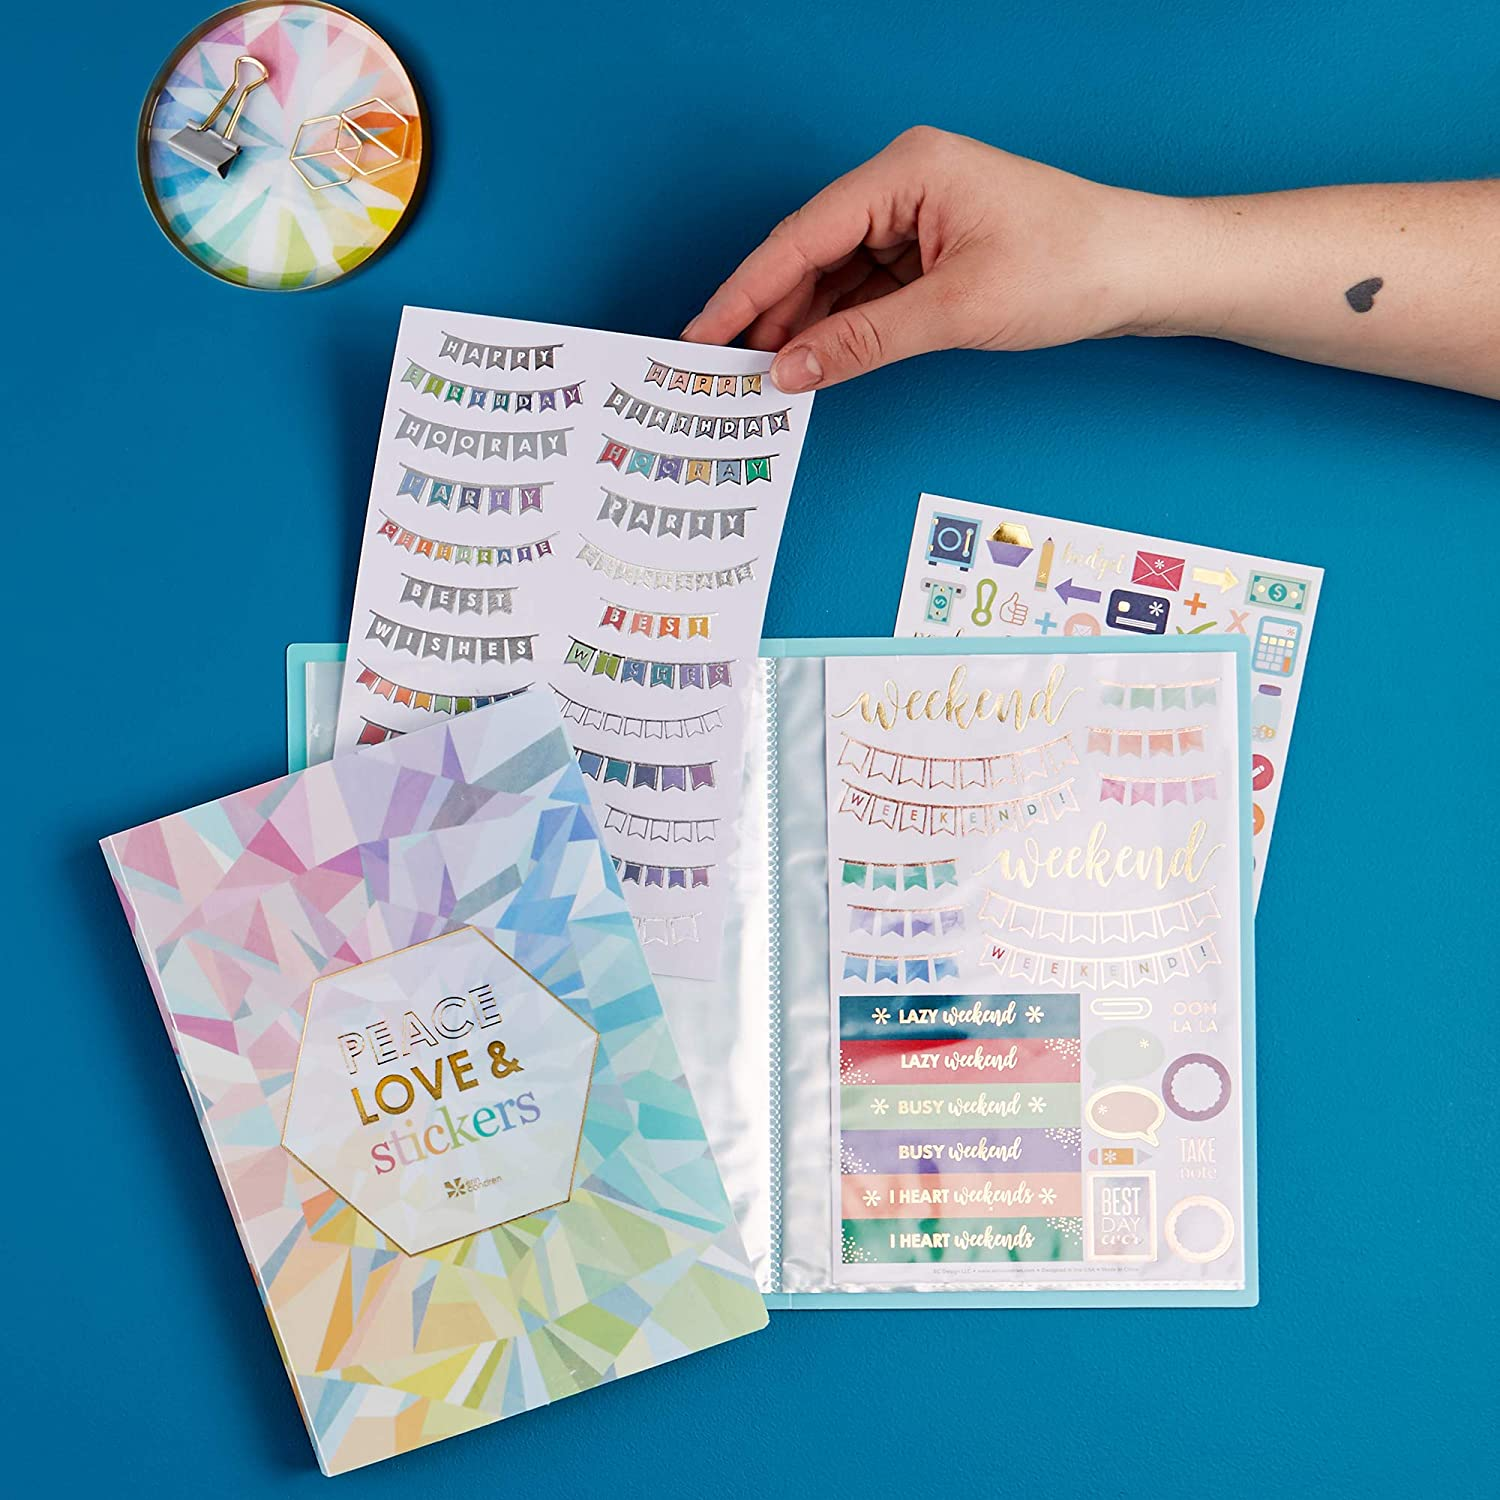 Keeps All of Your Favorite Stickers in One Organized Place Durable Organization 24 Pages Cute Holds 48 Sticker Sheets Pretty Erin Condren Designer Sticker Album